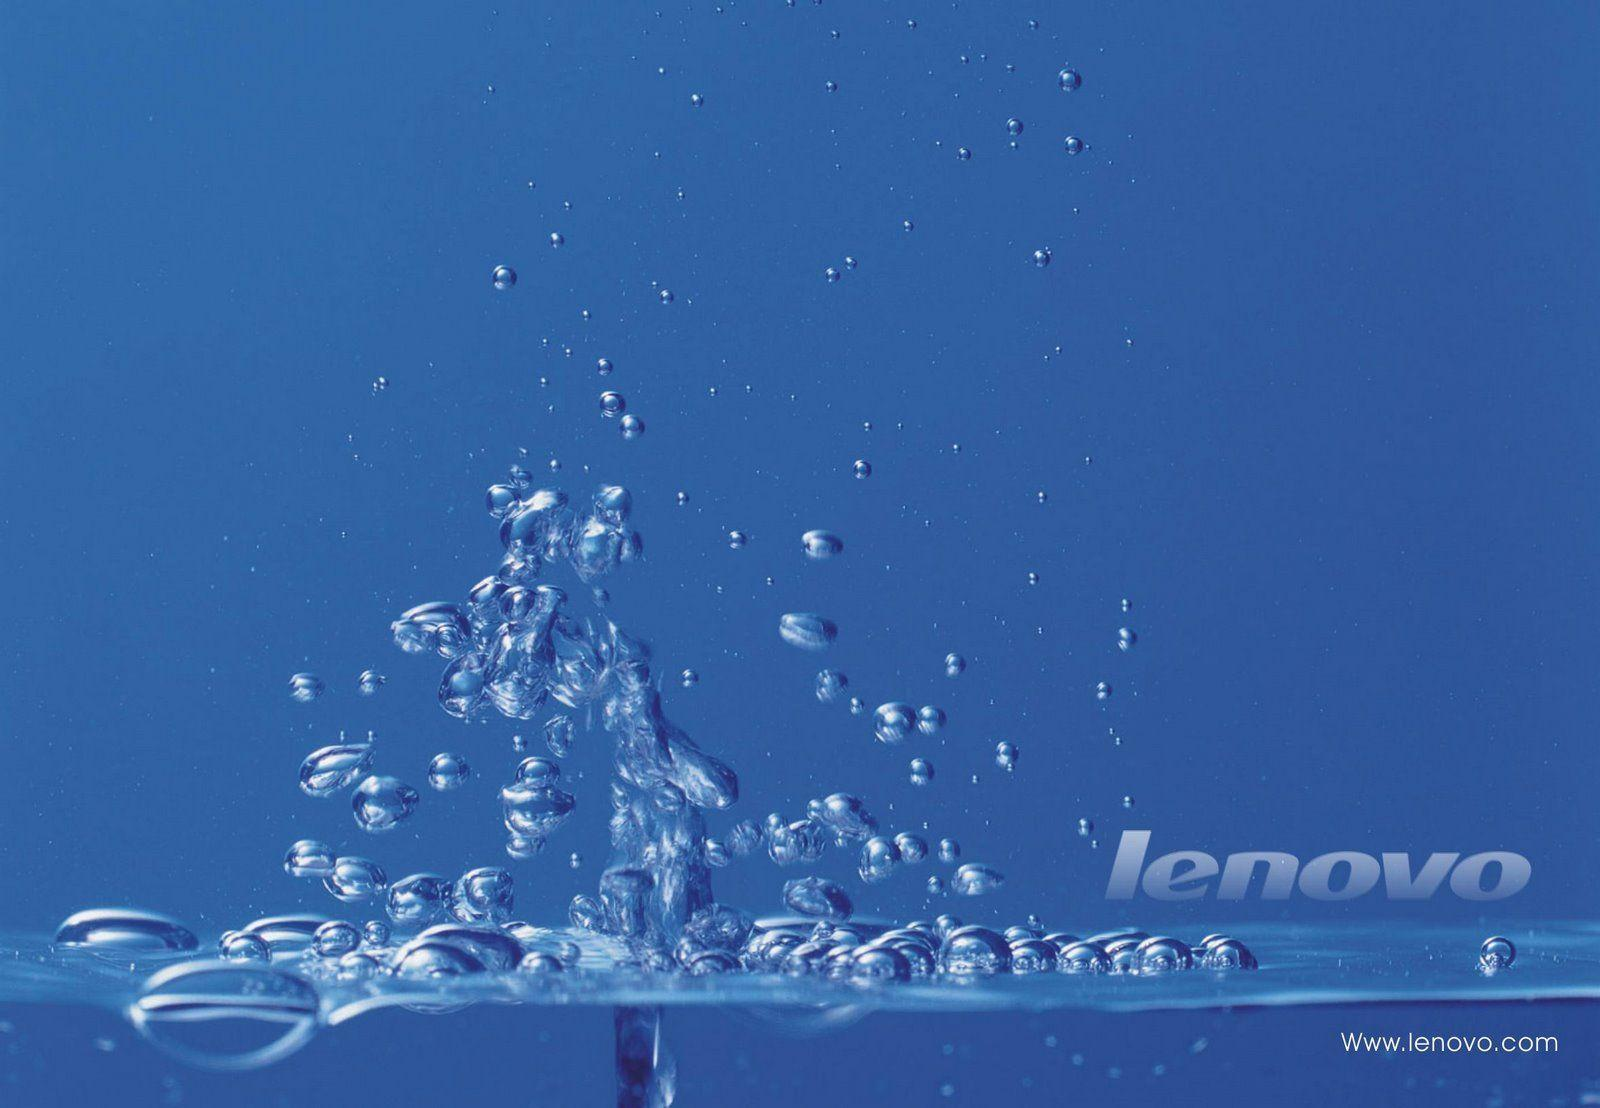 Lenovo Wallpapers Wallpaper Cave